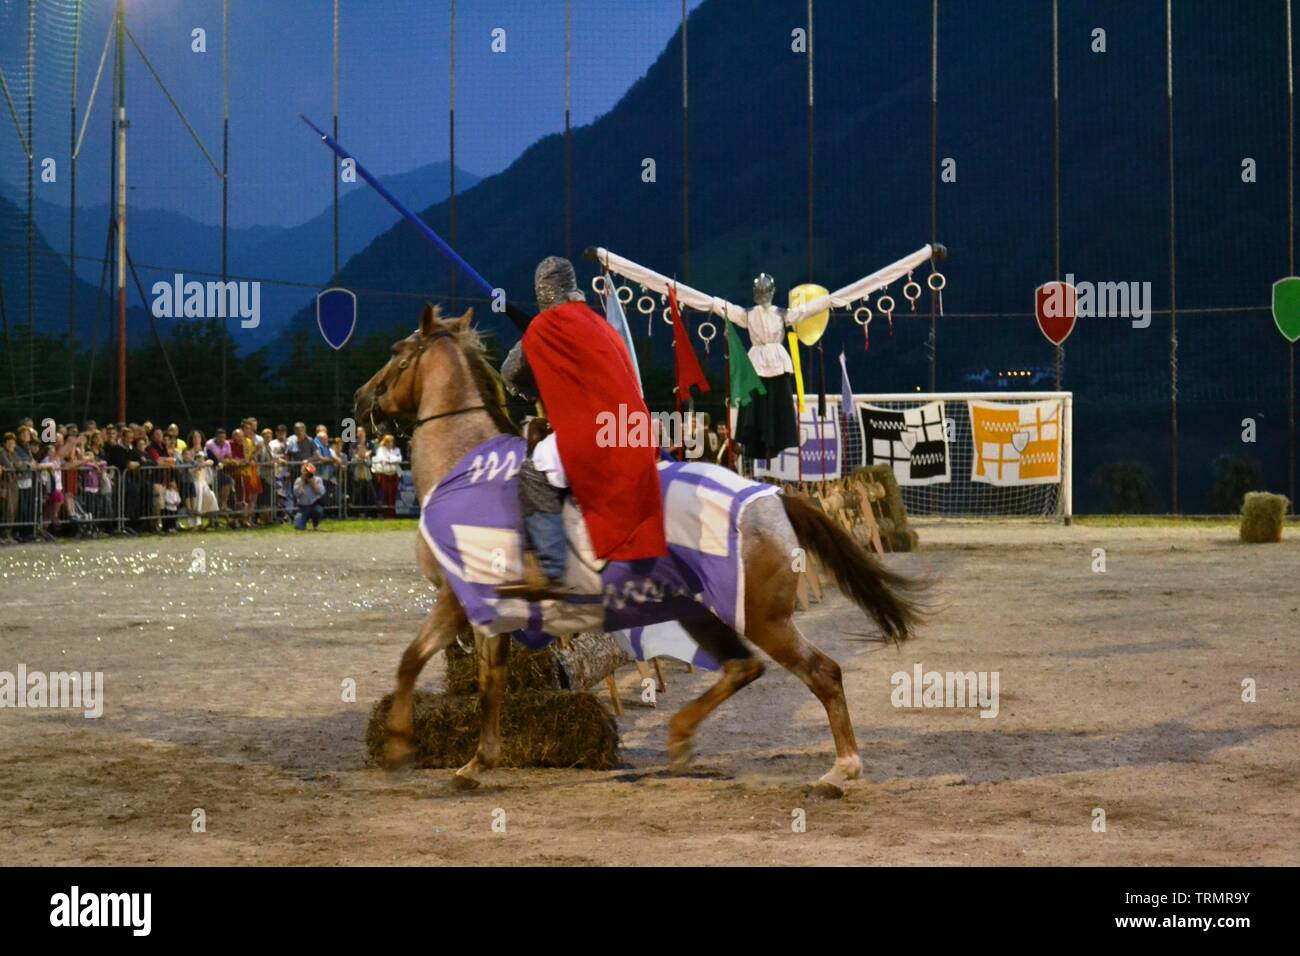 Primaluna/Italy - June 21, 2014: Medieval knight character competing during rings competition of the traditional village Medieval festival of the town Stock Photo